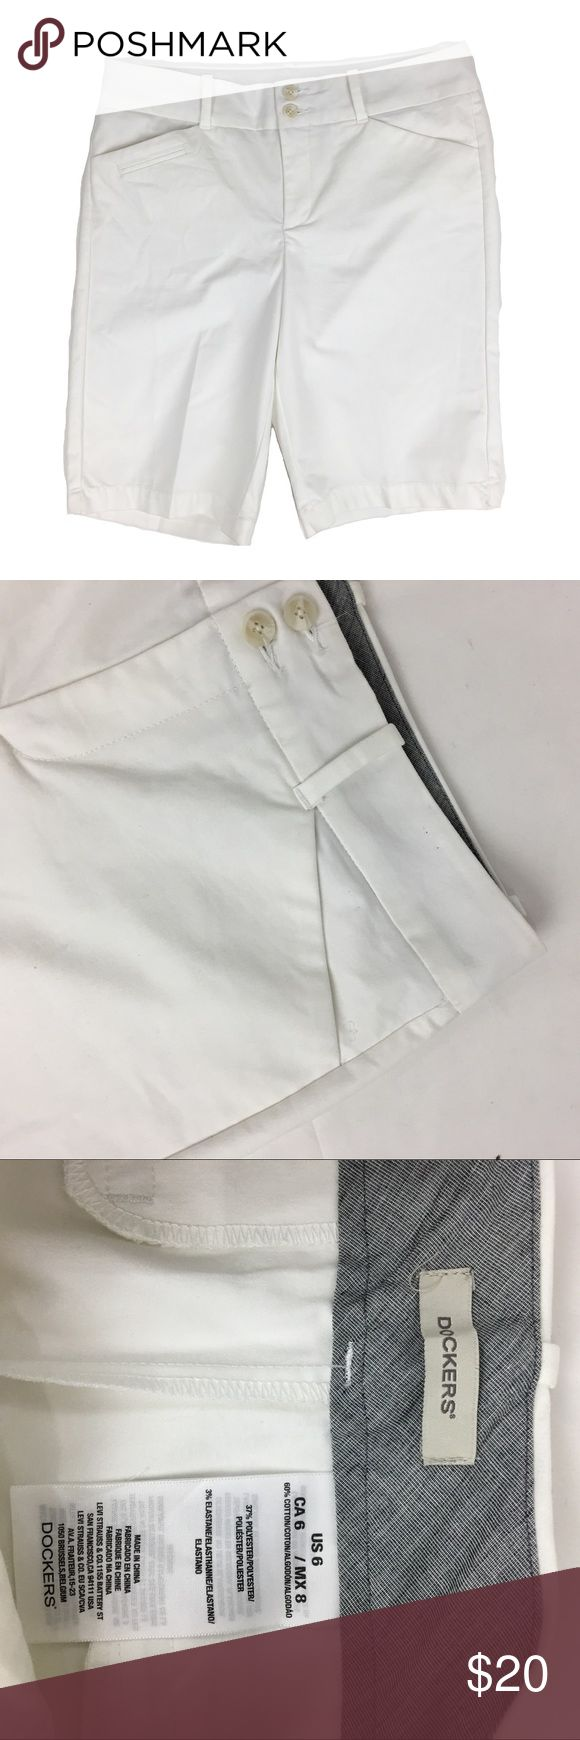 NWOT Dockers white size 6 women's capris shorts **** IF YOU THINK OUR AFFORDABLE PRICES ARE TOO HIGH FOR YOU, MAKE A REASONABLE OFFER ON ANY OF THE ITEMS IN OUR STORE AND WE MAY ACCEPT IT****     - Size:  - Material:  - Condition: EXCELLENT, brand new  - Color:  - Pockets:  - Lined: n/a - Closure:  - Pair with:    *Measurements:   Bust:  WAIST: Length:  SLEEVE: Rise: Inseam:   * The more you buy the more you save. Feel free to ask any questions. Thank you for stopping by. * Dockers Shorts